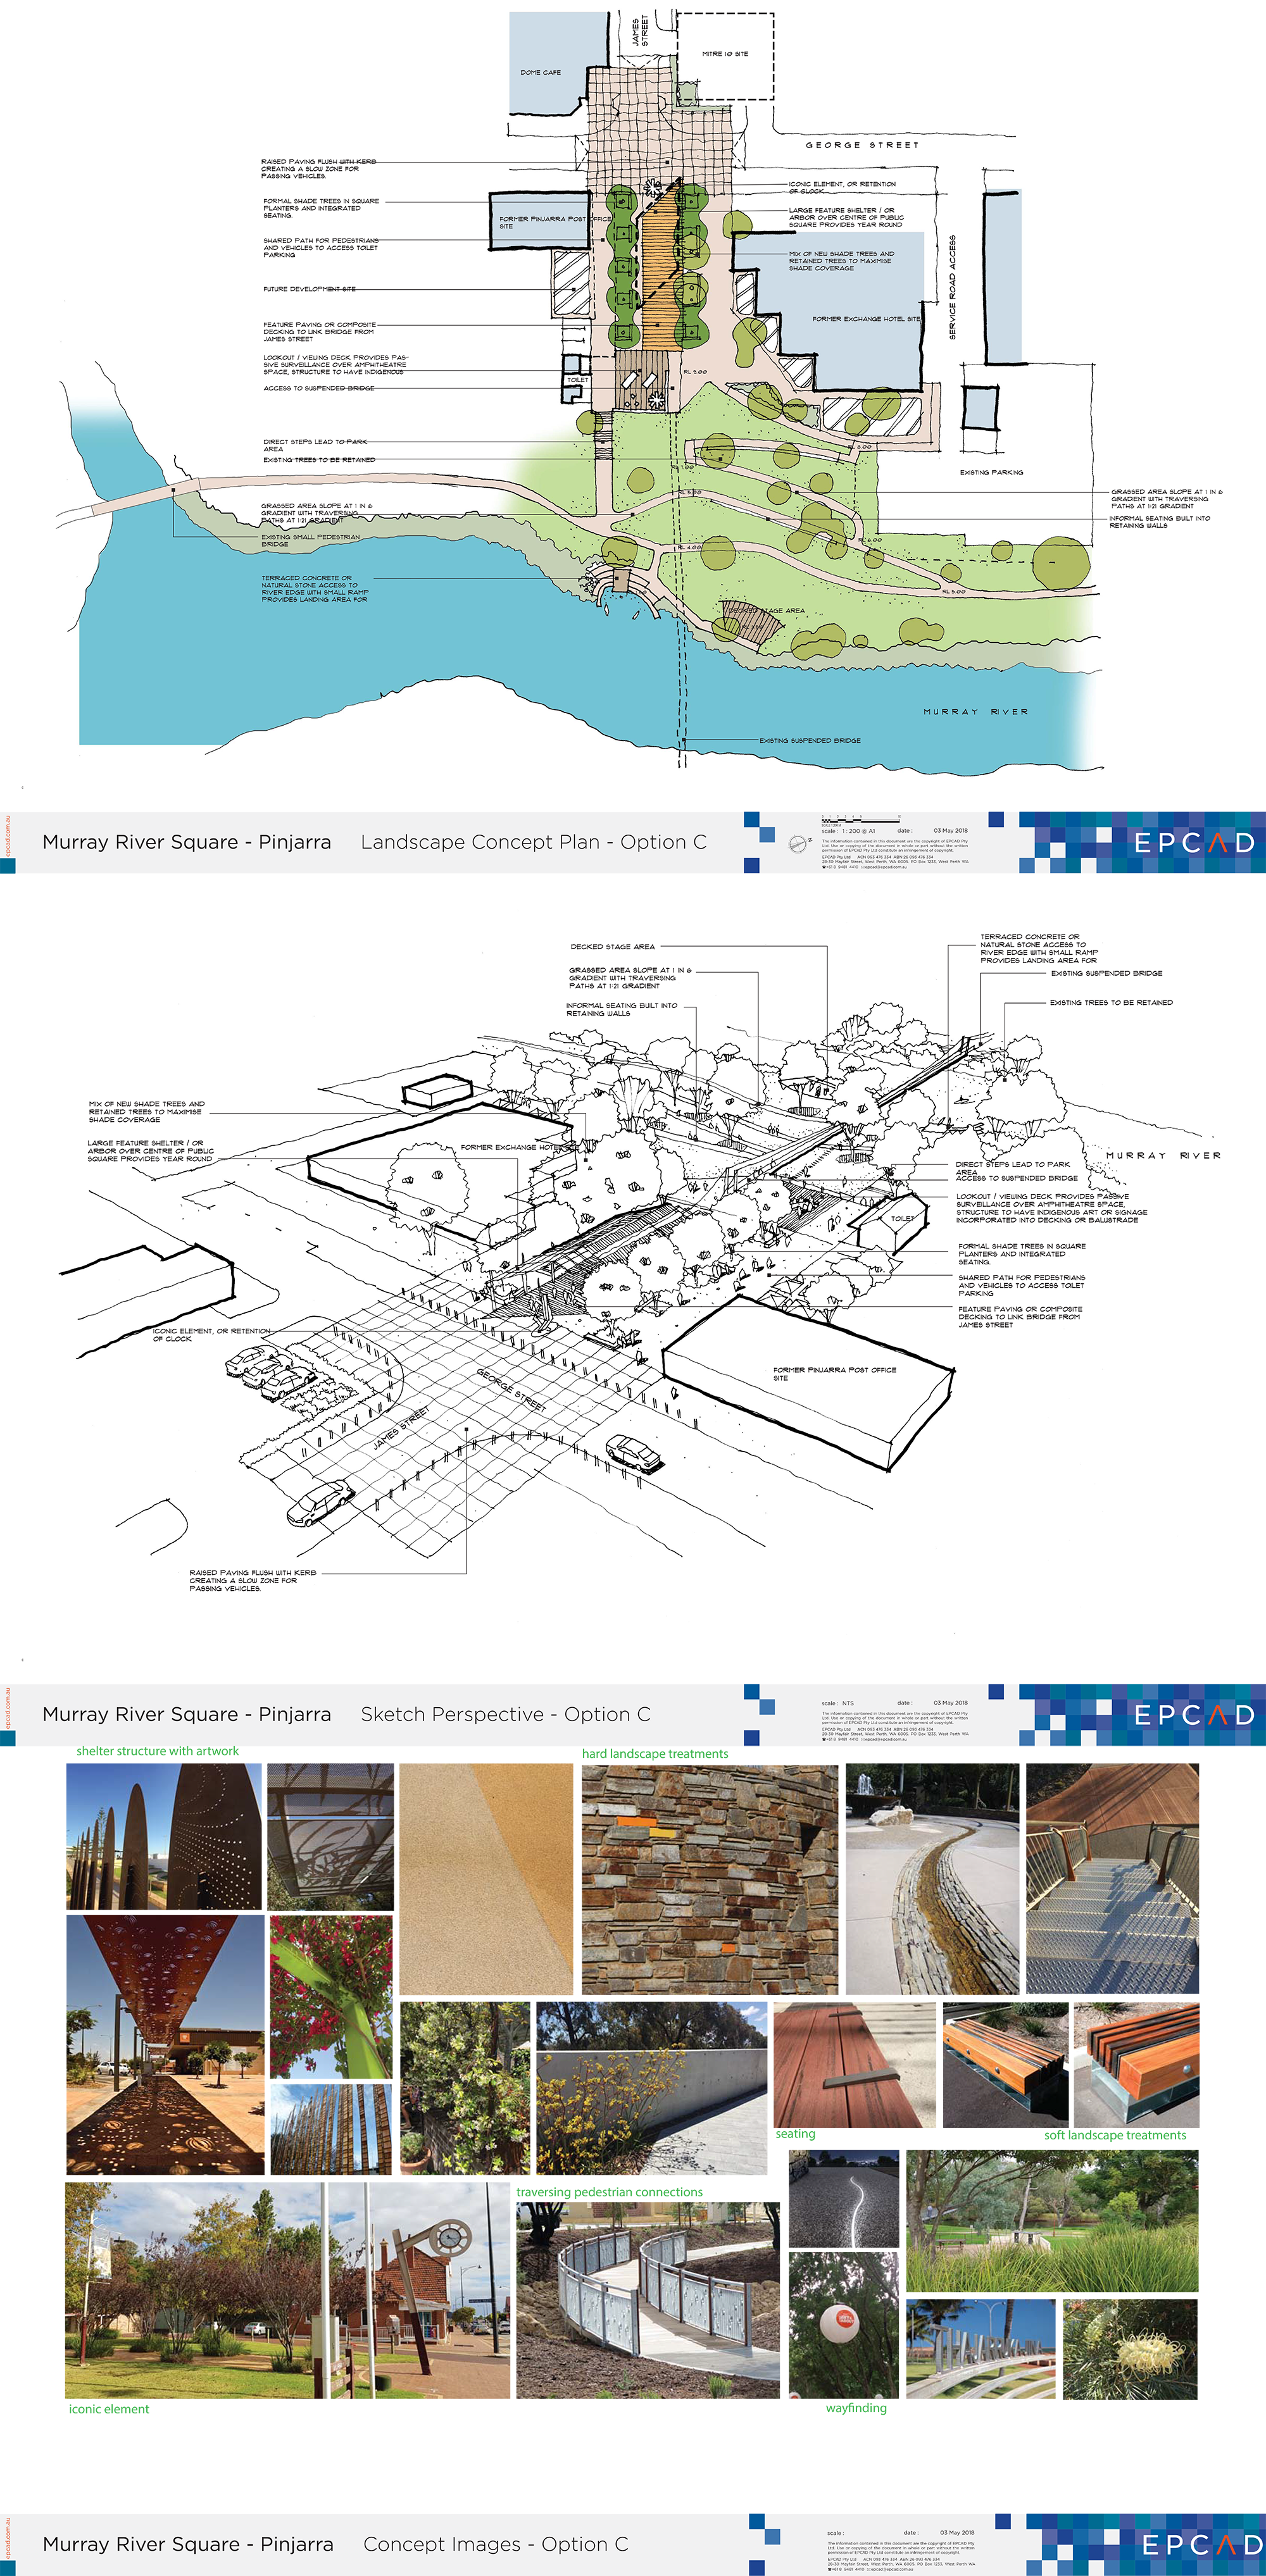 Murray River Site plan - perspective and images - Option C